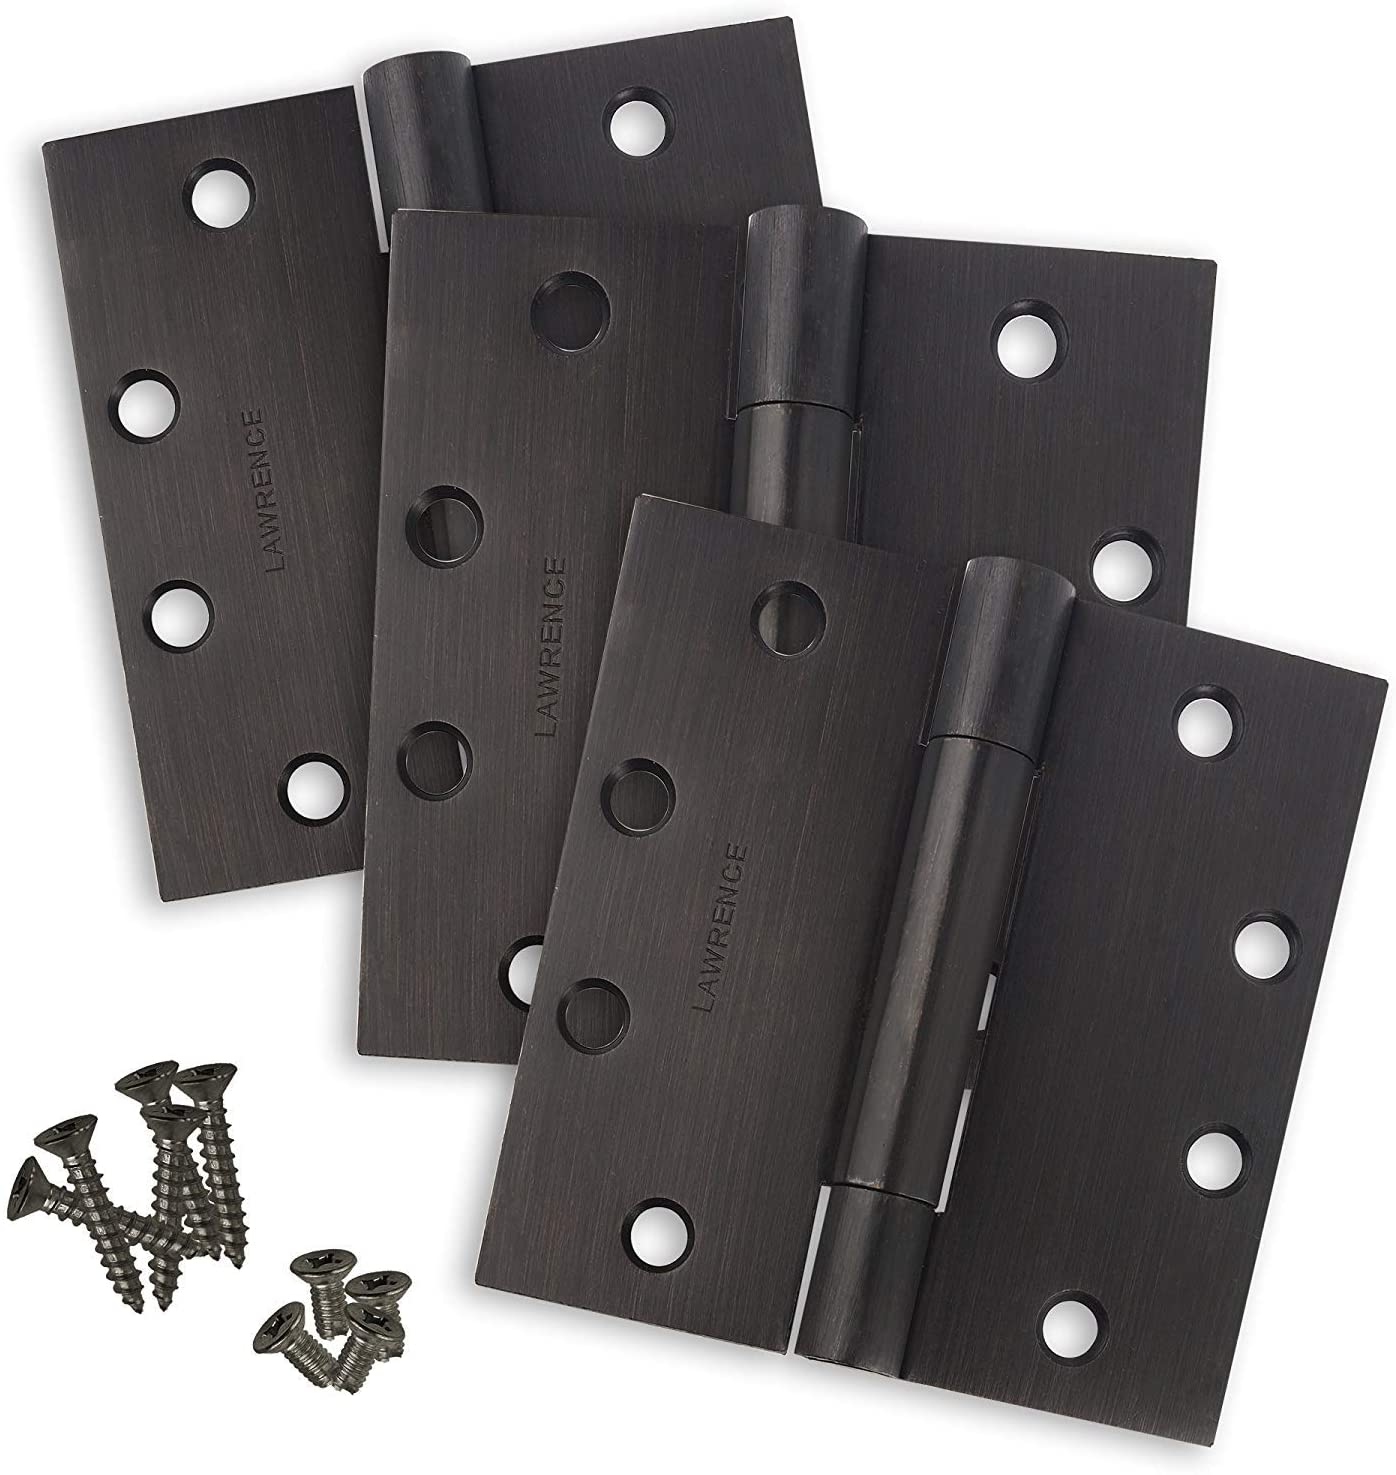 Commercial Door Hinges, Standard Weight Butt Hinge, 4.5 x 4.5, Concealed Bearings, Oil Rubbed Bronze (US10B), 3 Pack, Lawrence Hardware